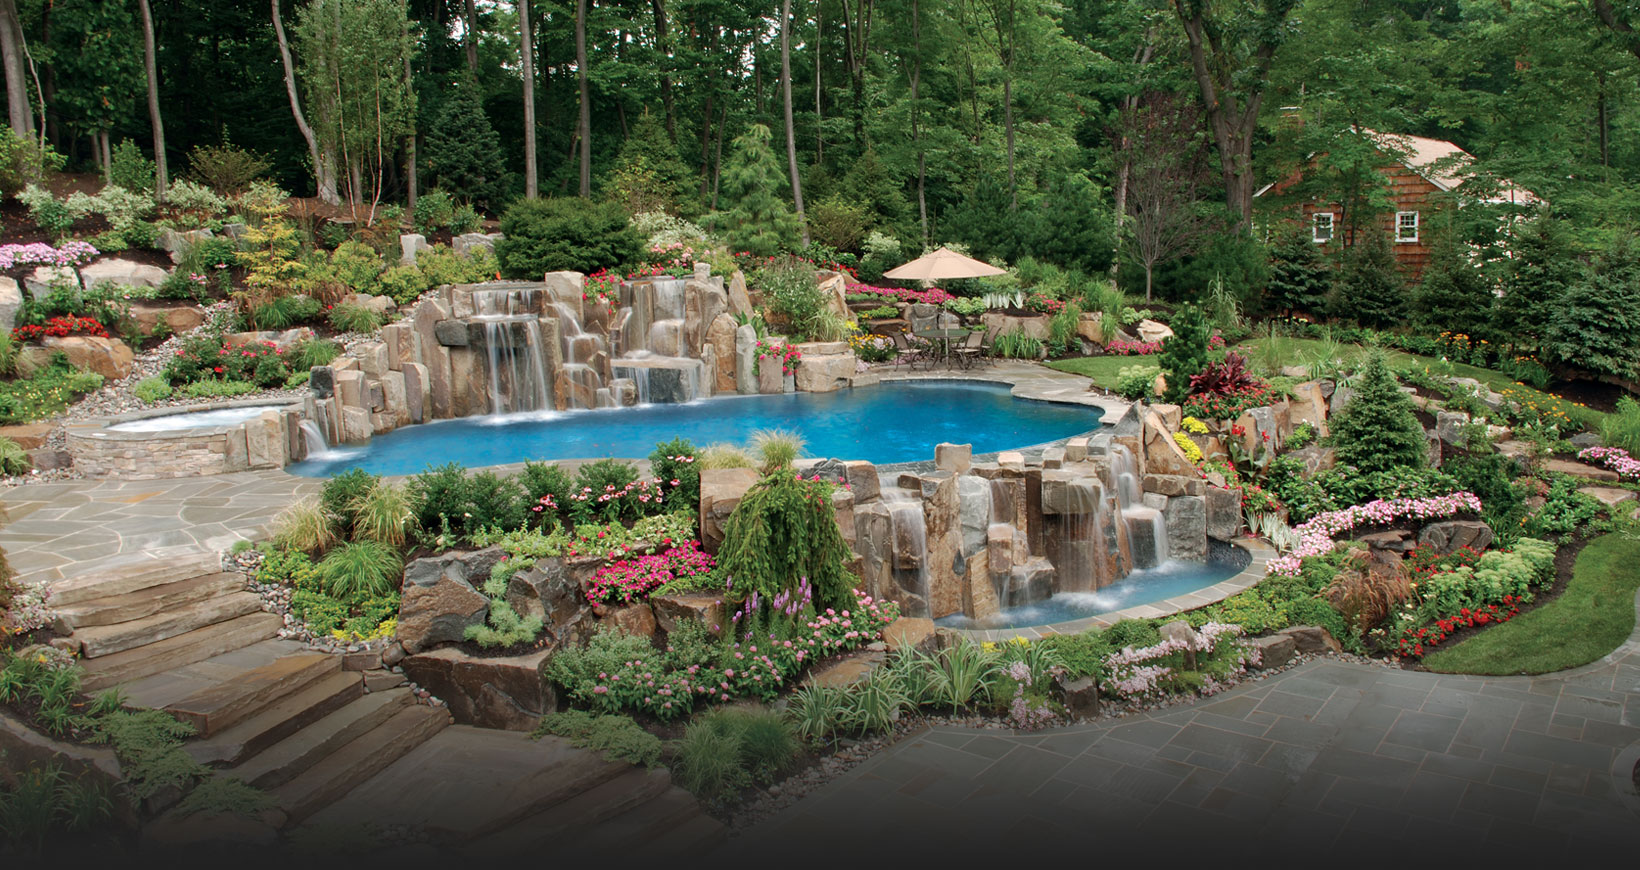 Wonderful Pool Design Outdoor Swimming Pool With Garden Surround It ...